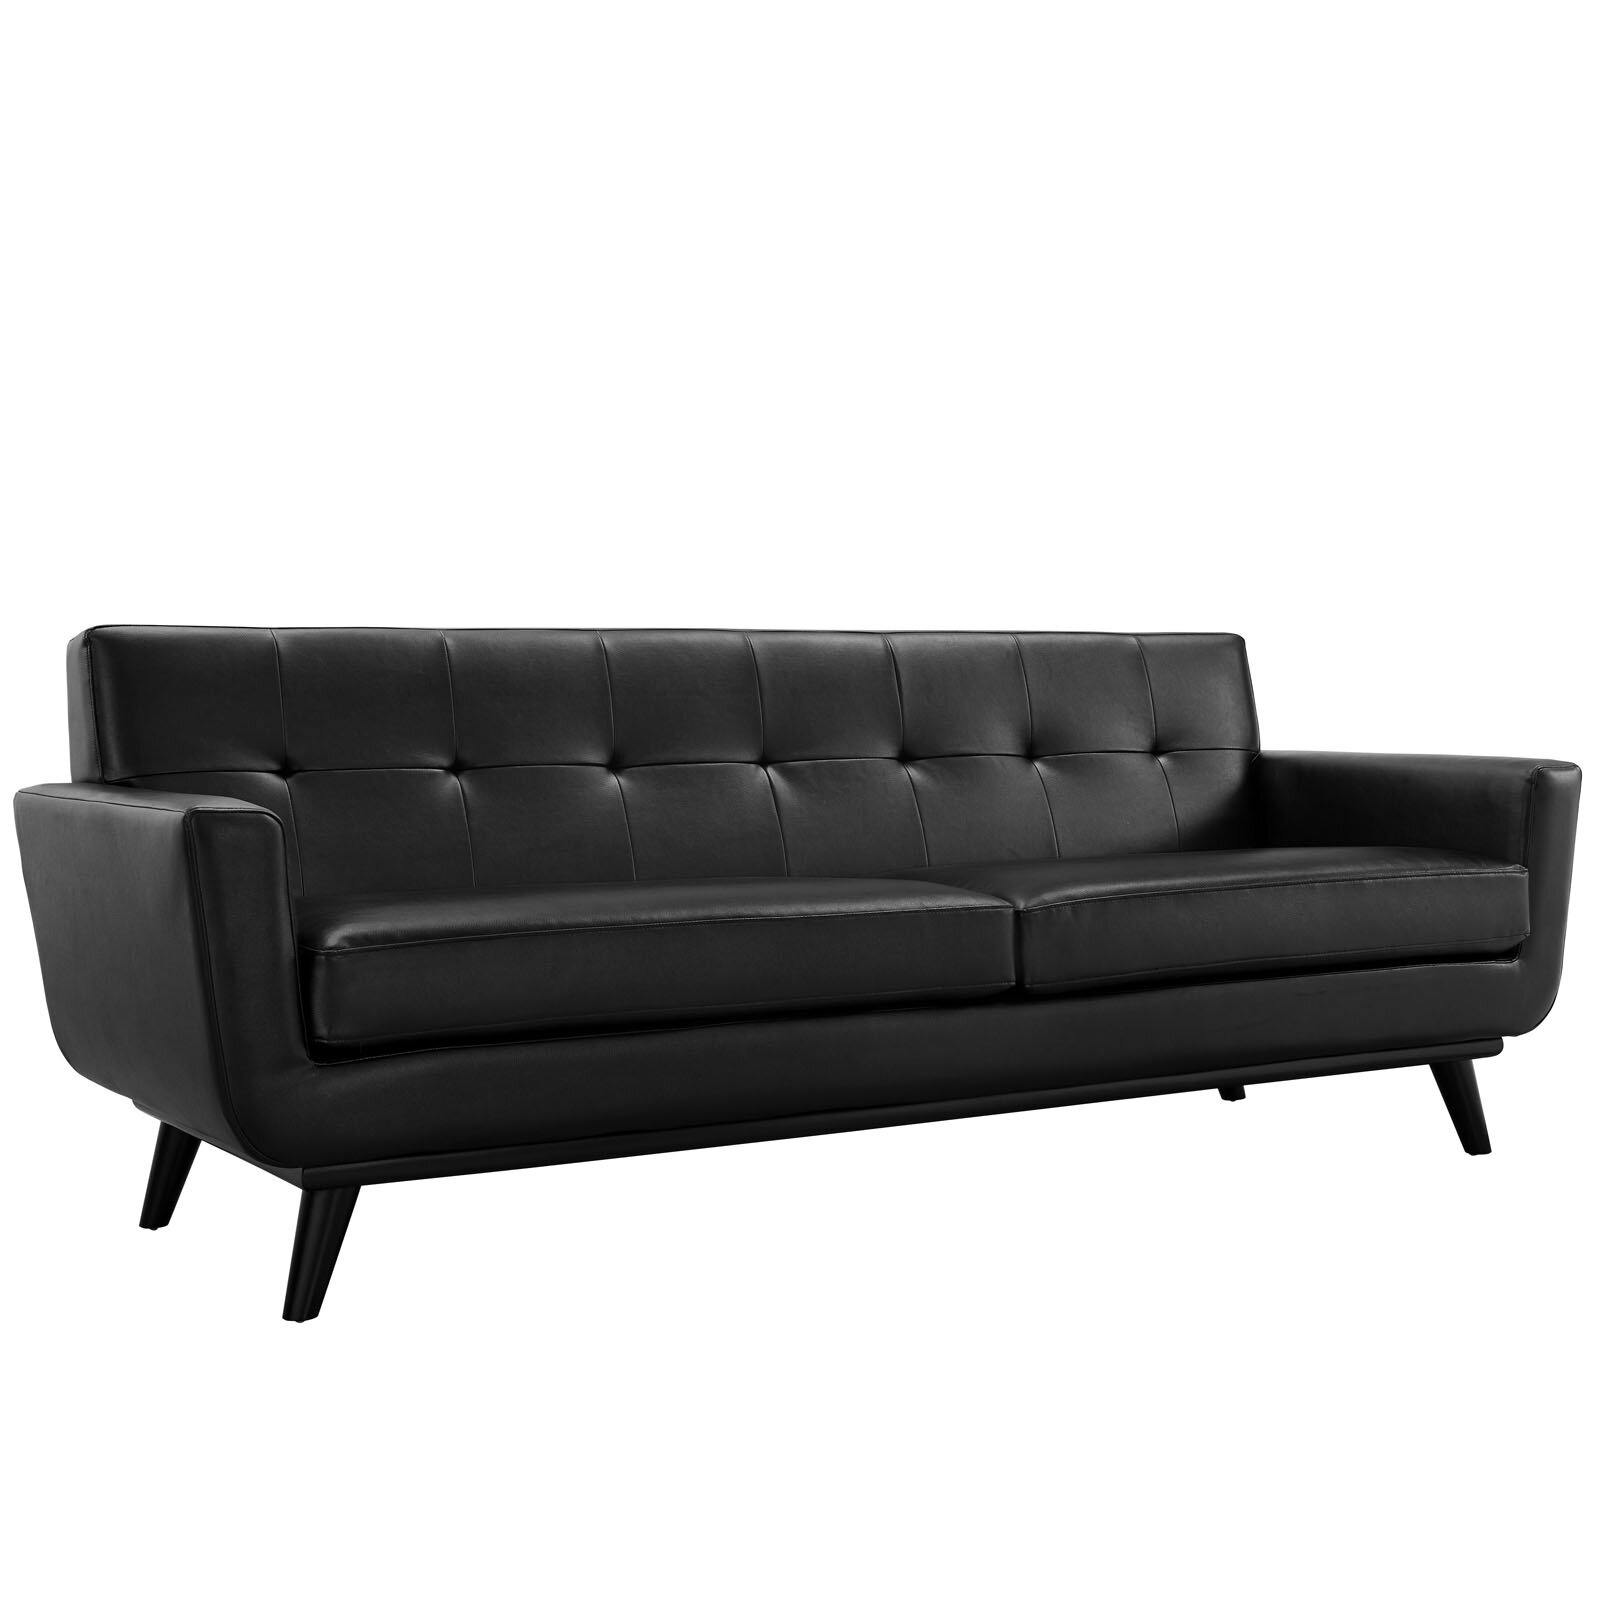 Ikea Kivik Sofa Reviews Gallery Saveemail With Ikea Kivik Sofa